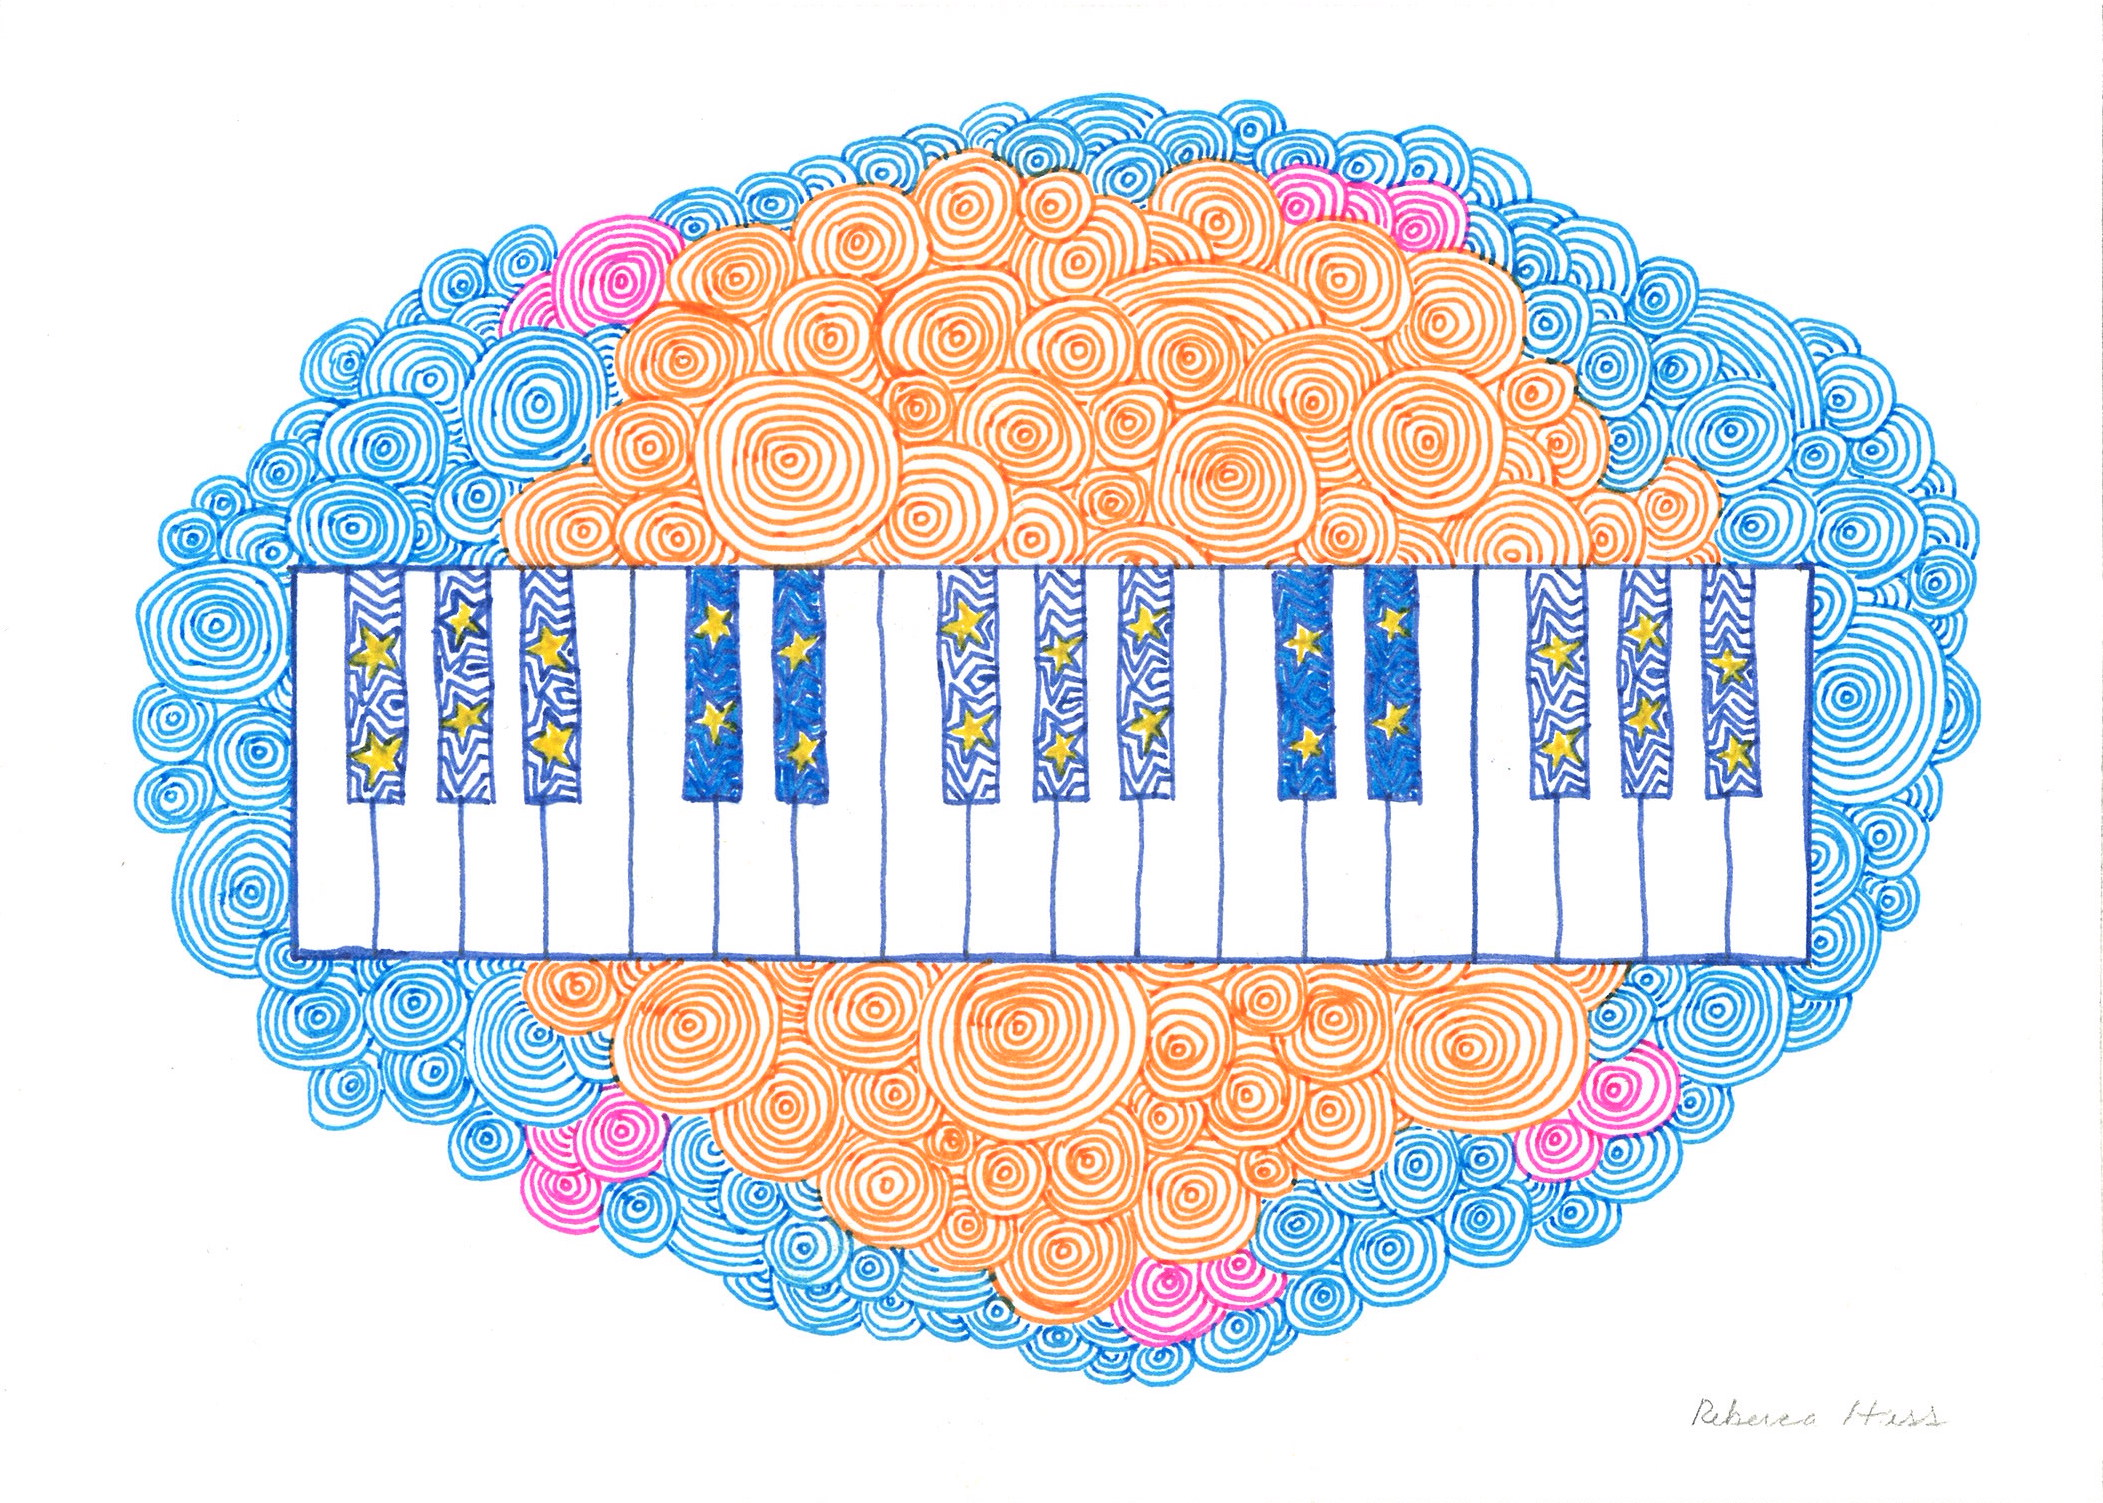 Rebecca-Hass-Piano-Drawing-Print.jpg